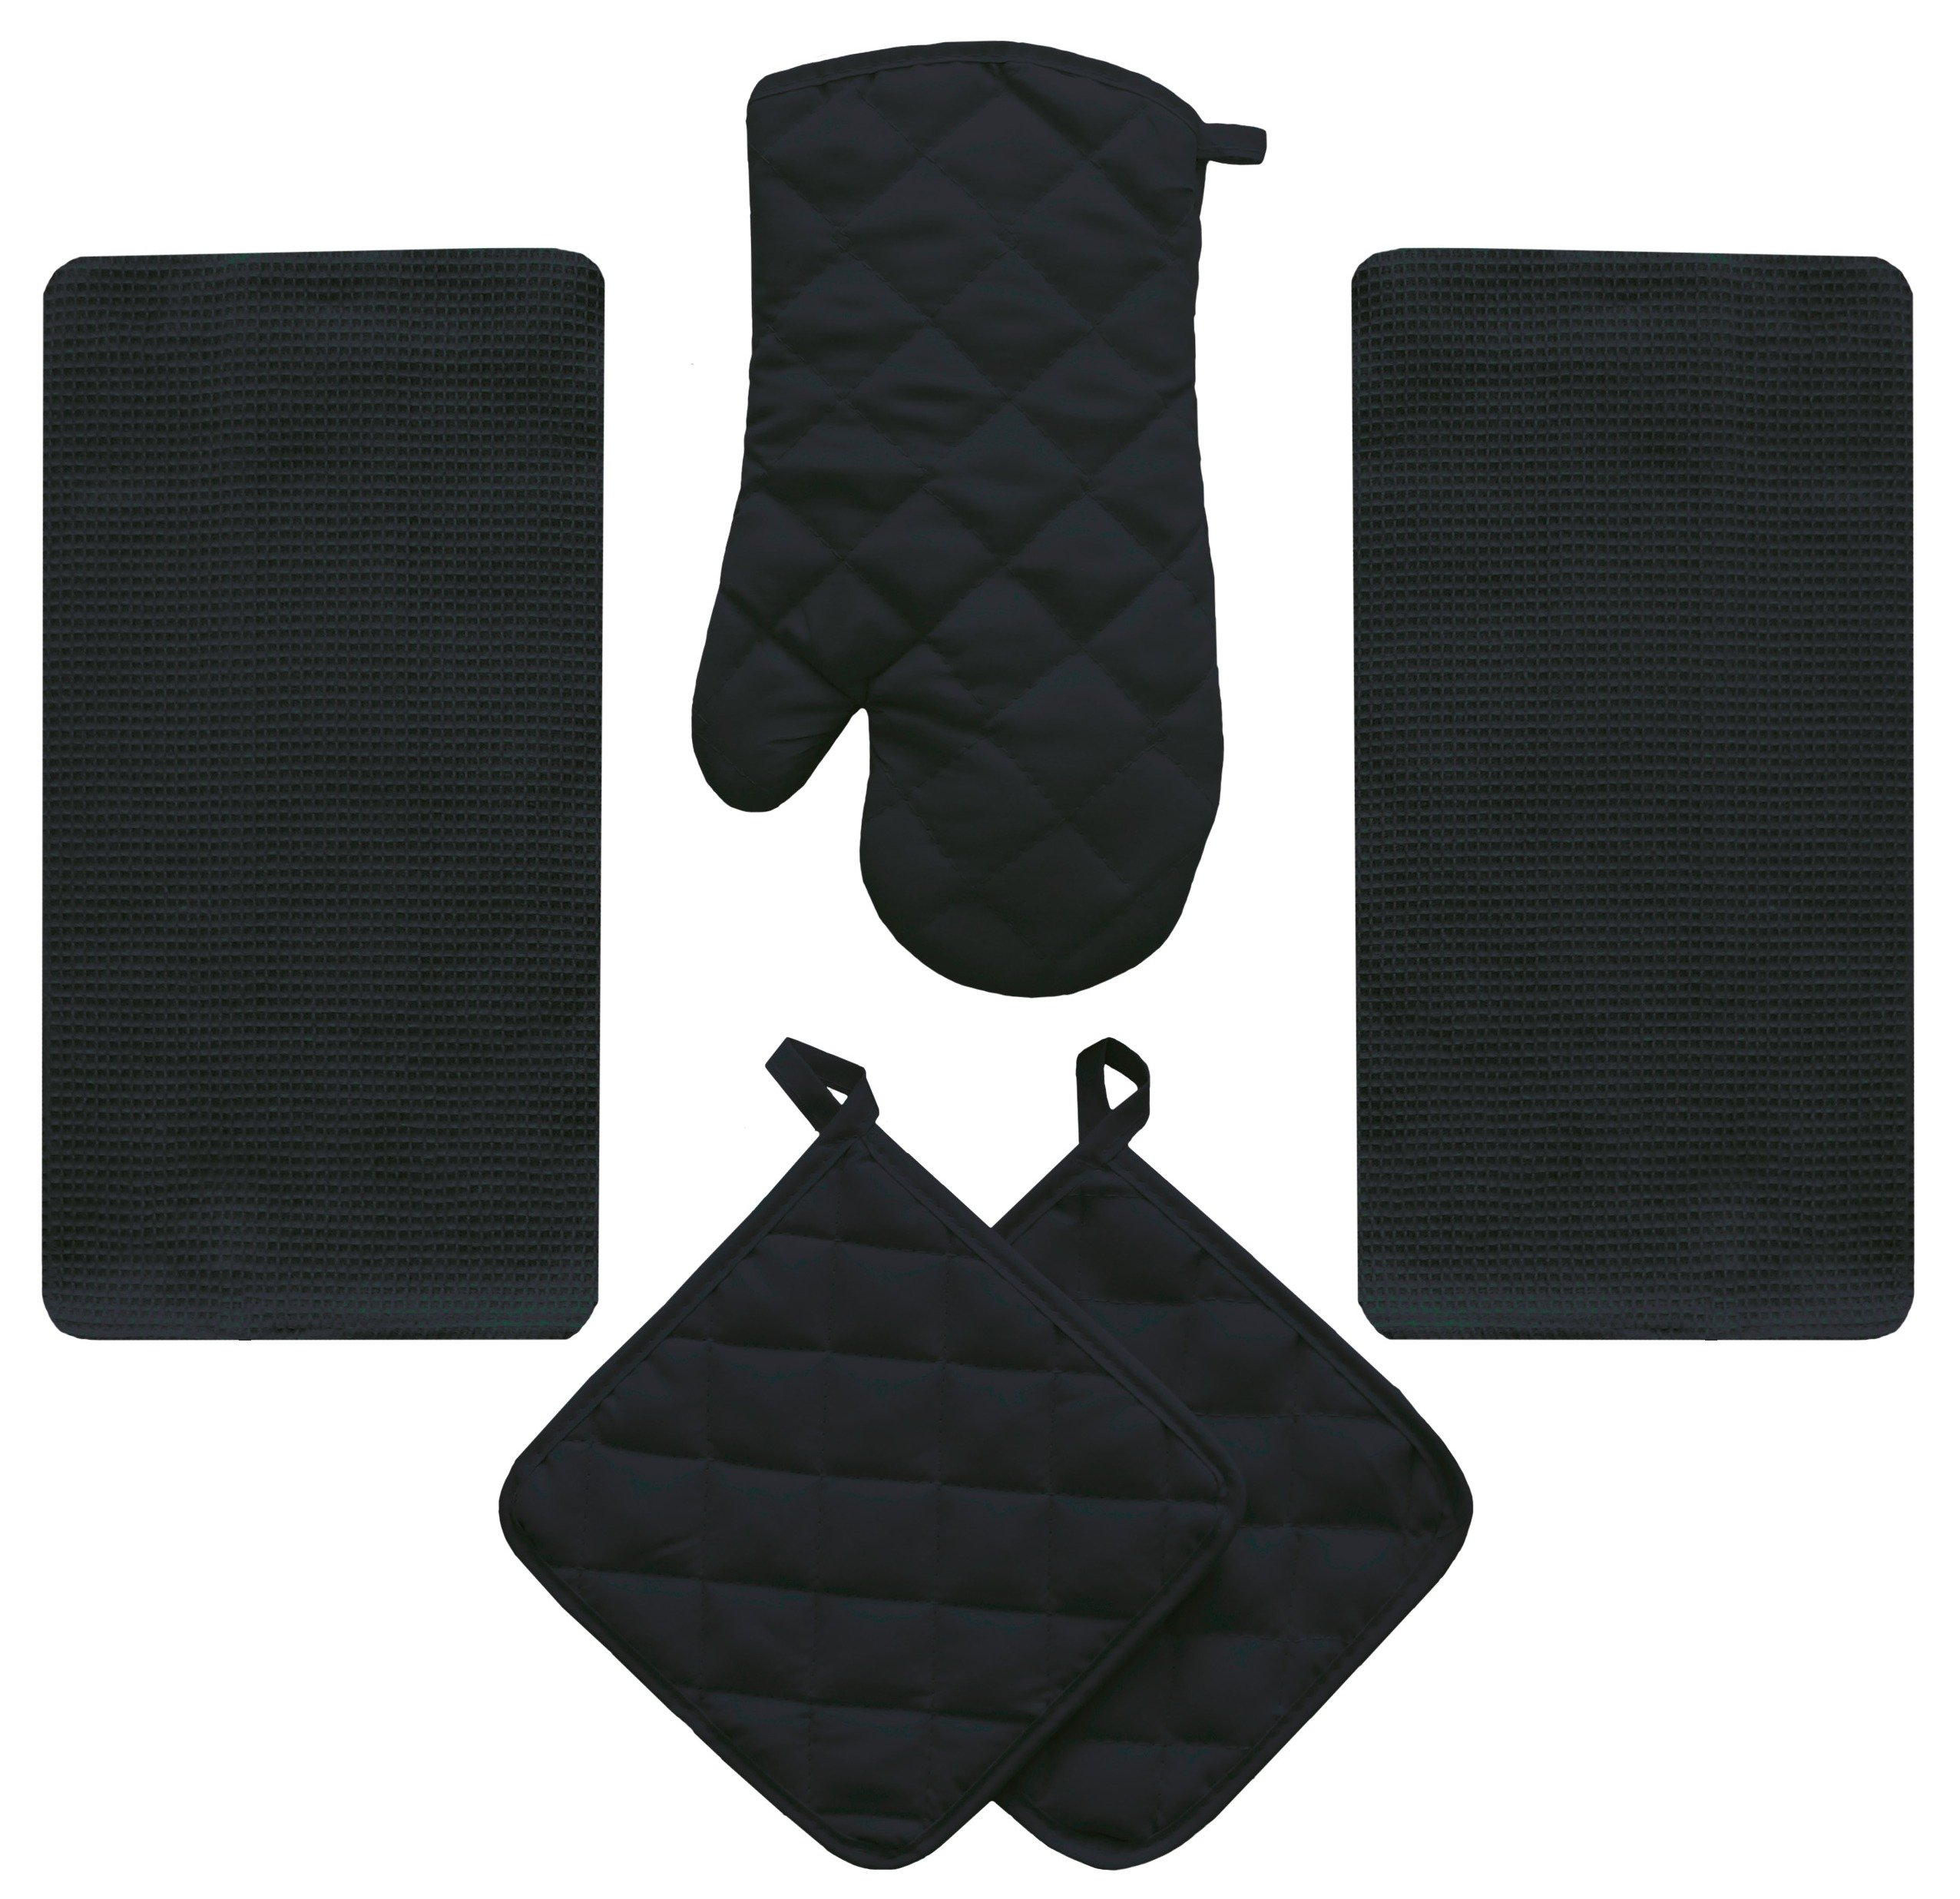 5 Piece Midnight Black Kitchen Linen Towel Set Solid Colors Heavy Weight Cotton With Potholder Oven Mitt